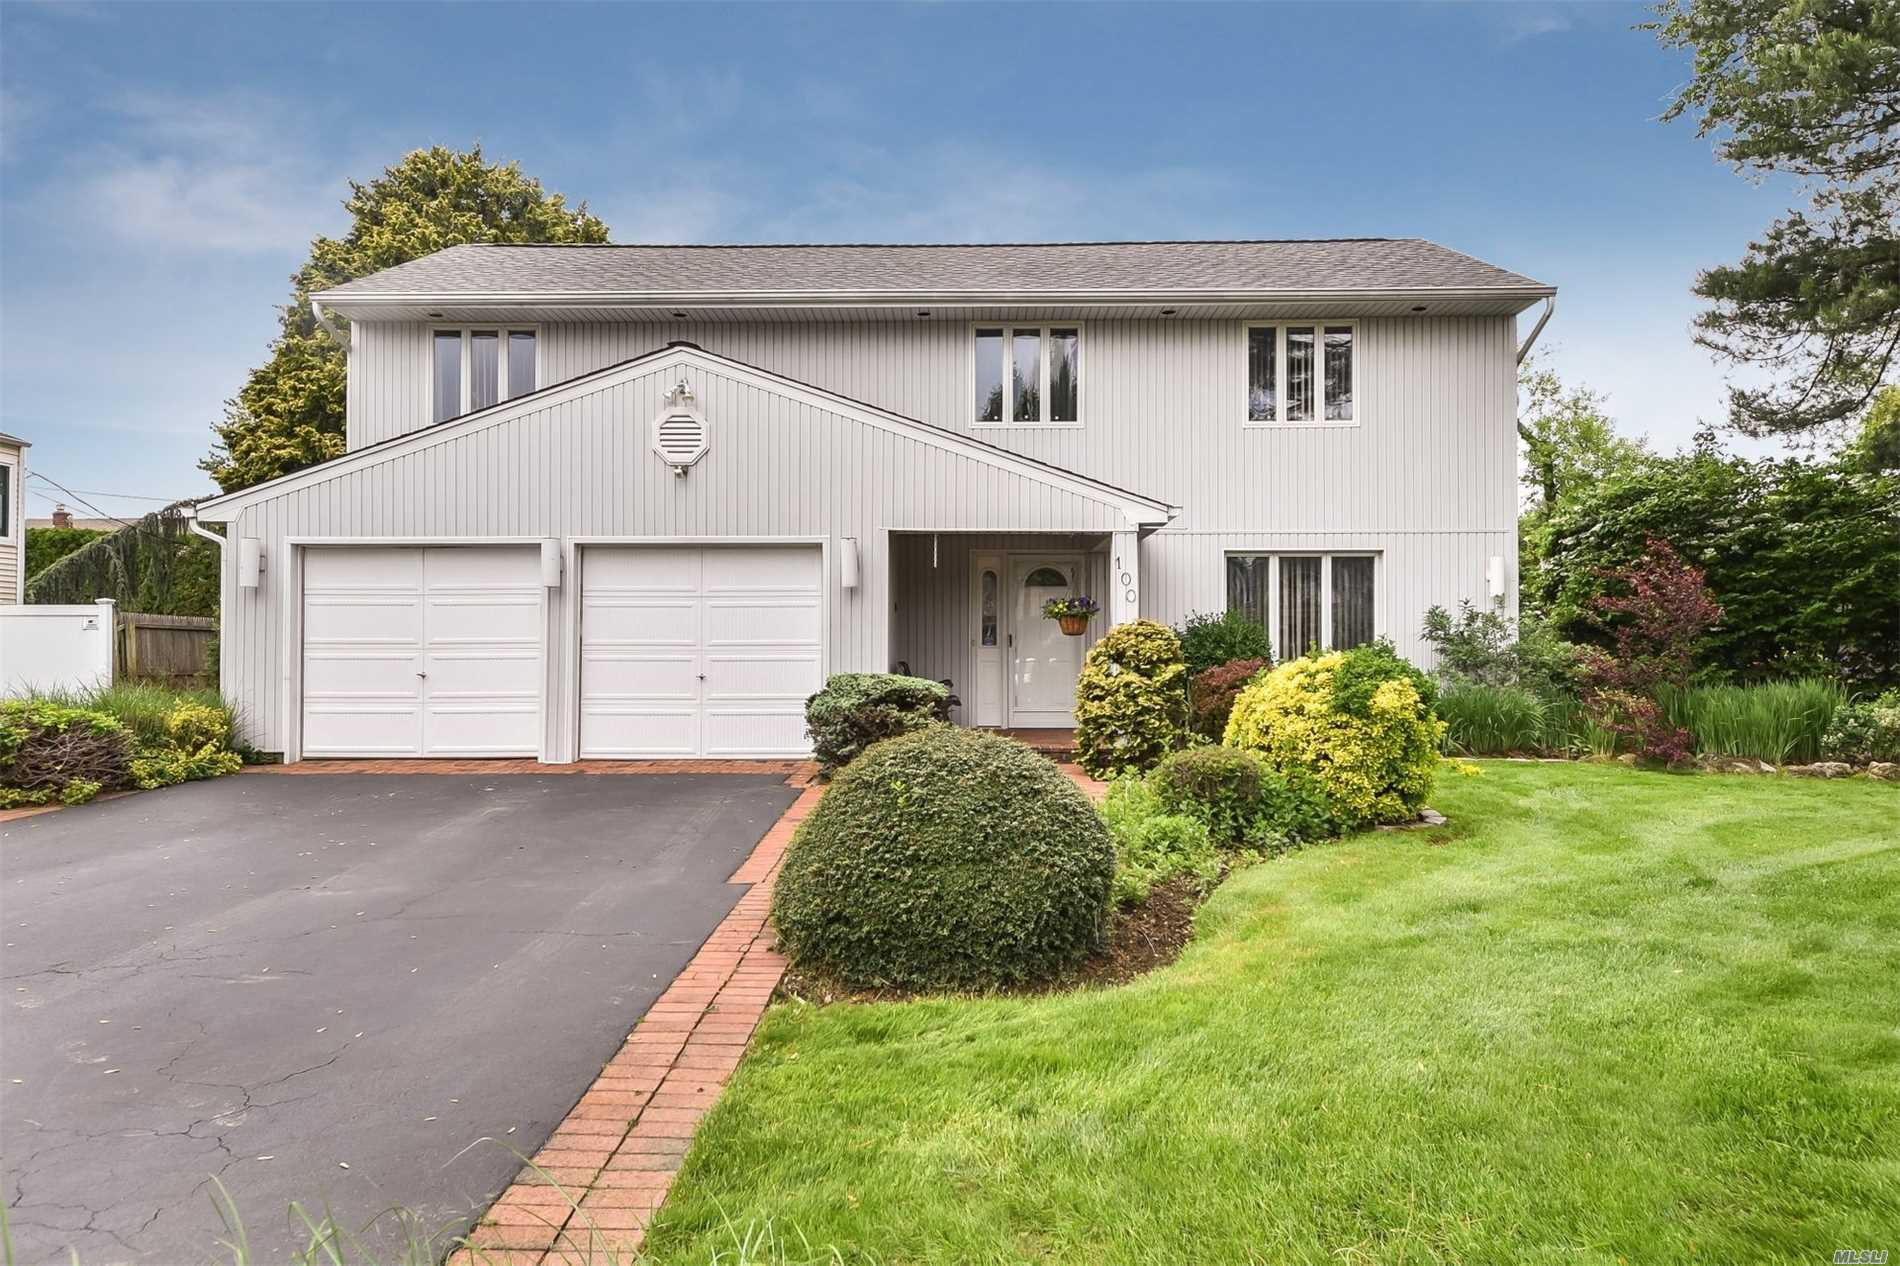 Unique Splanch In W. Birchwood's Desired Madison Pl In Pvt Cul-De-Sac. Offers It All. Large Property, Quiet Location, Colonial Style Bedroom Layout With Bonus Family Room, Ig Pool, And Many More Updates. Recently Converted To Gas Heat, New Burner, New Hot Water Heater, 6 Yr Old Roof, Solar Heated Pool With 2 Yr Old Vinyl, Anderson Thermal Pane Windows, 3 Year Old Cac, And Re-Done Baths. Come See This Well Maintained Home. Will Not Last! Jericho Schools. Cantiague Elementary.